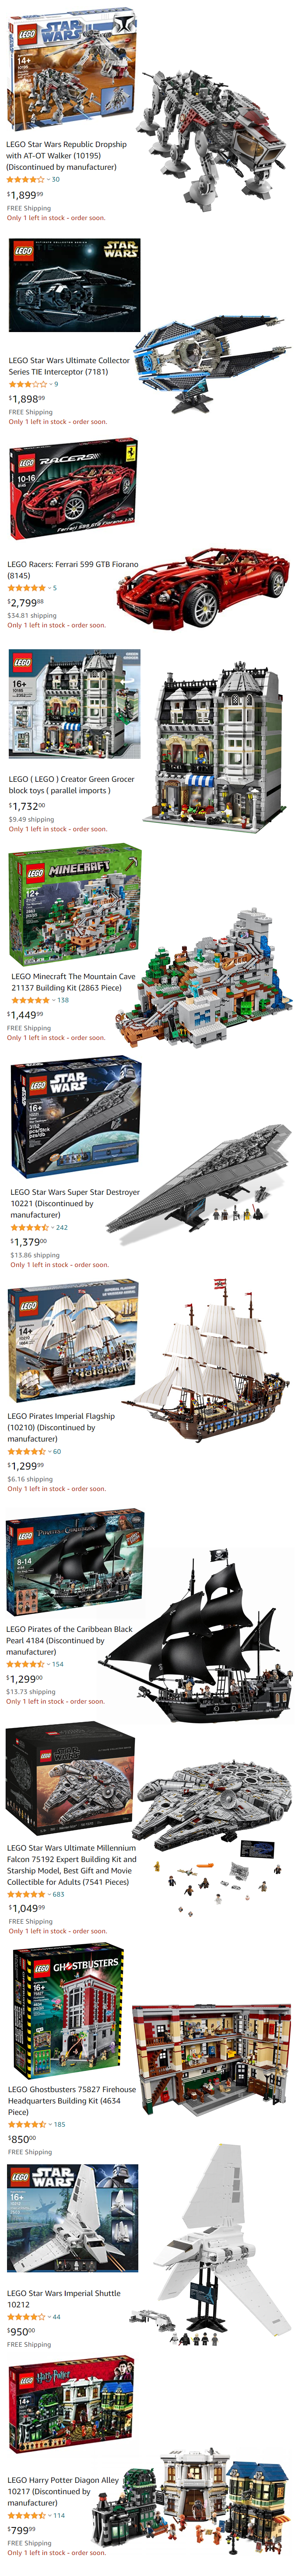 THE MOST EXPENSIVE LEGO BUILDING SETS EVER